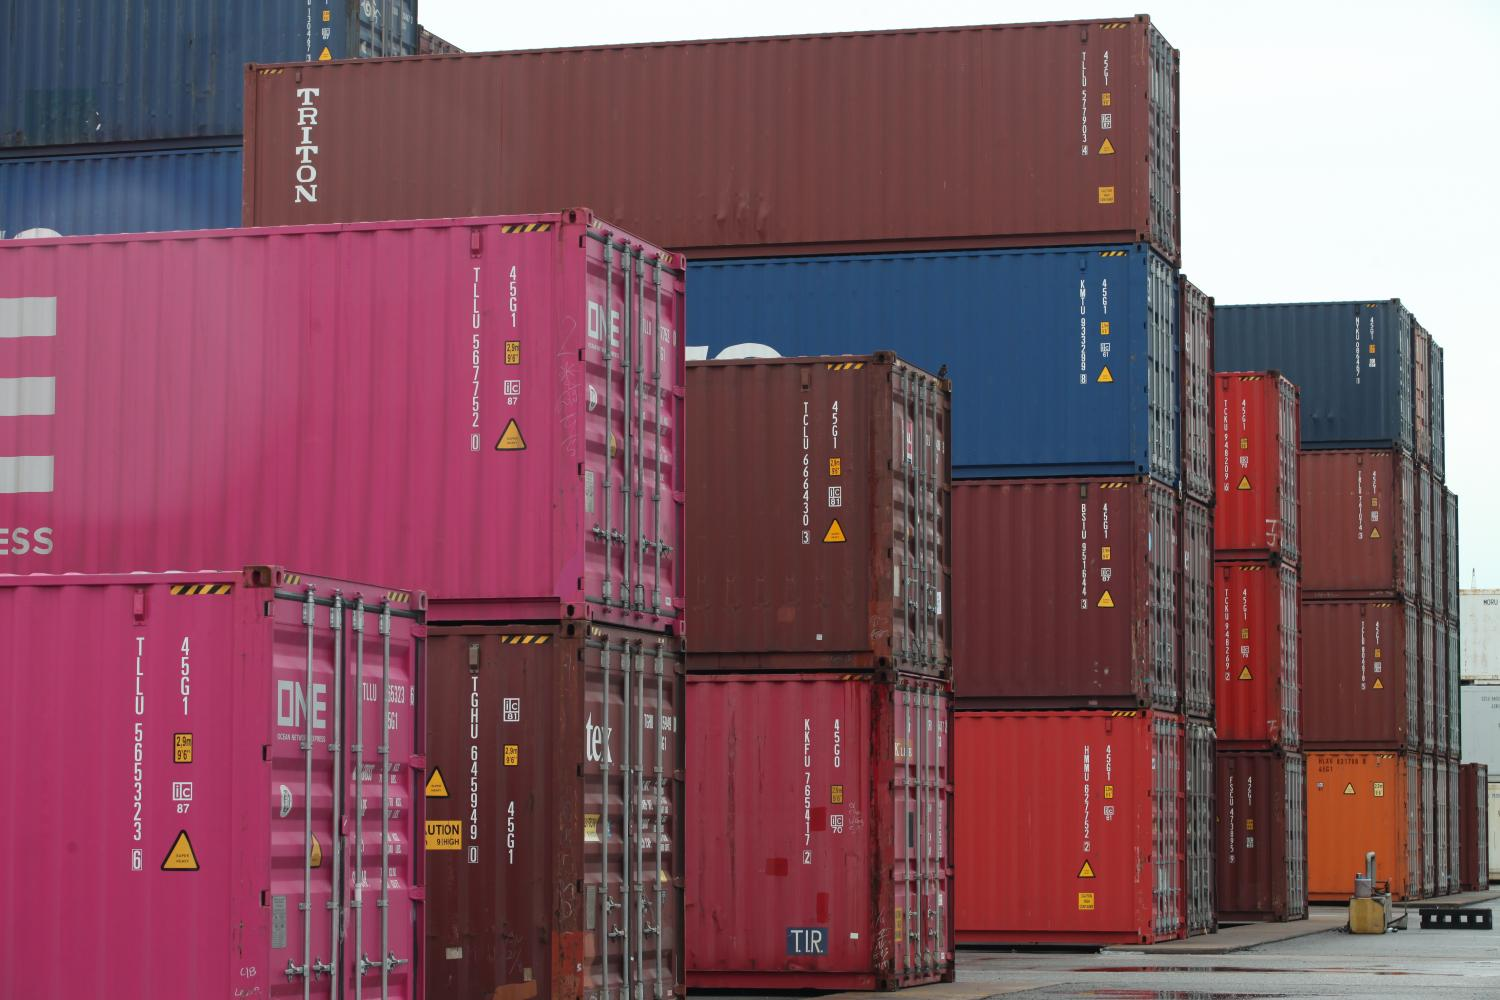 Shipping containers sit ready for export at Laem Chabang port in Chon Buri. Apichart Jinakul